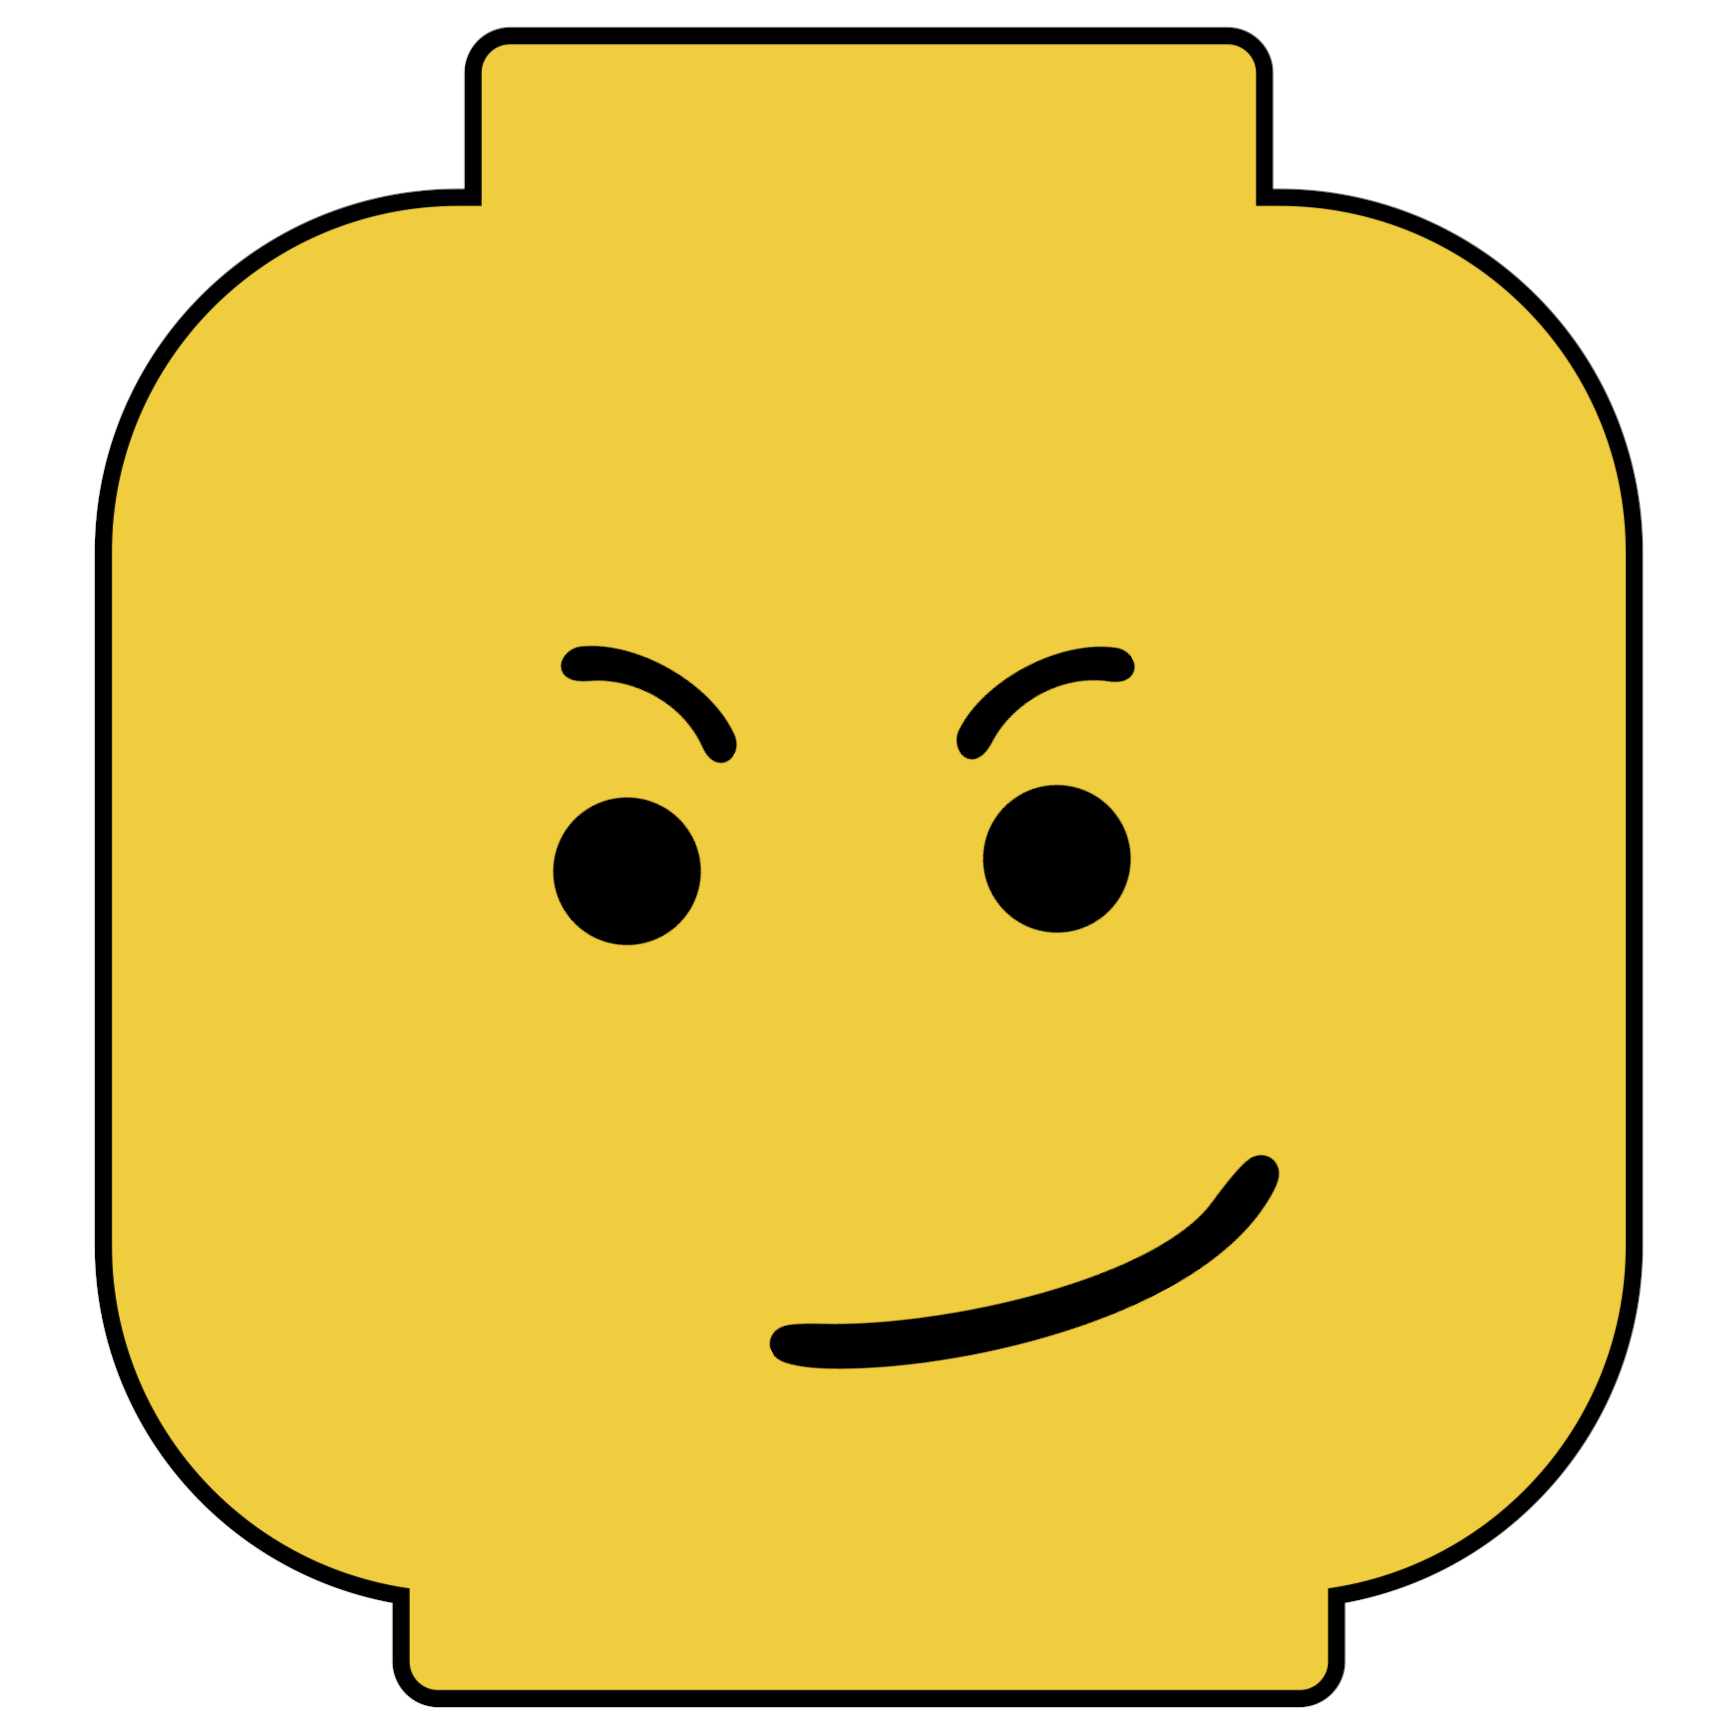 Magic image pertaining to lego face printable